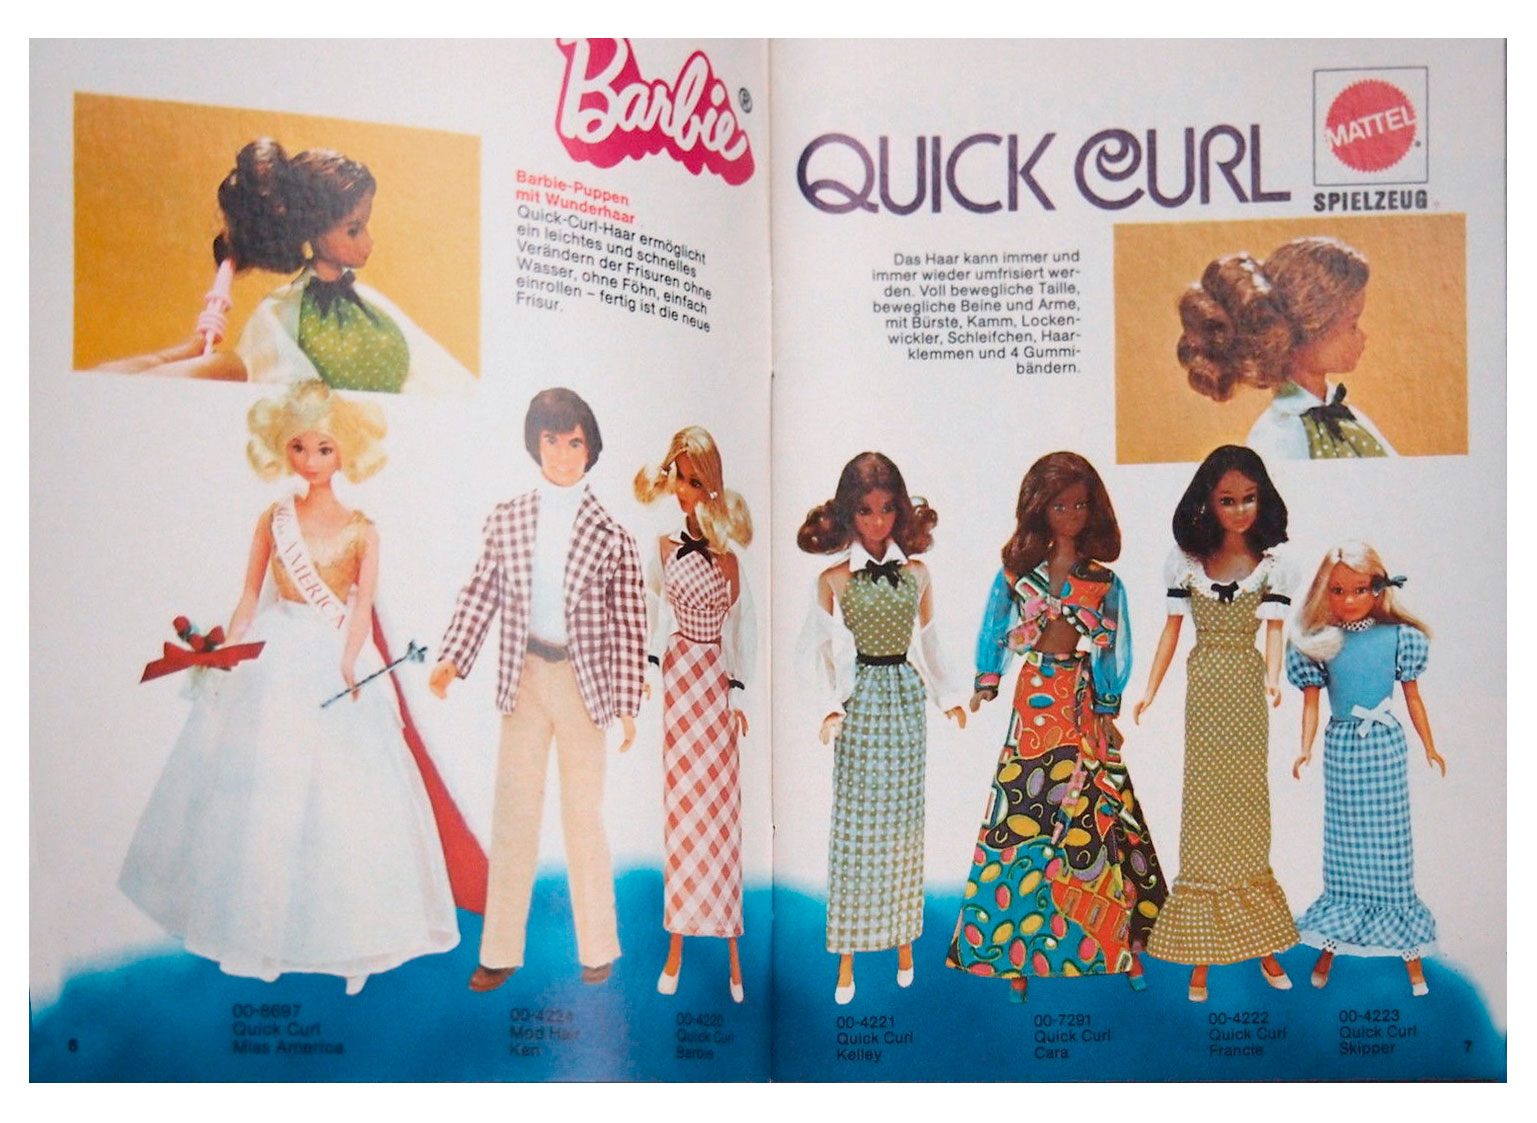 From 1975 German Barbie booklet